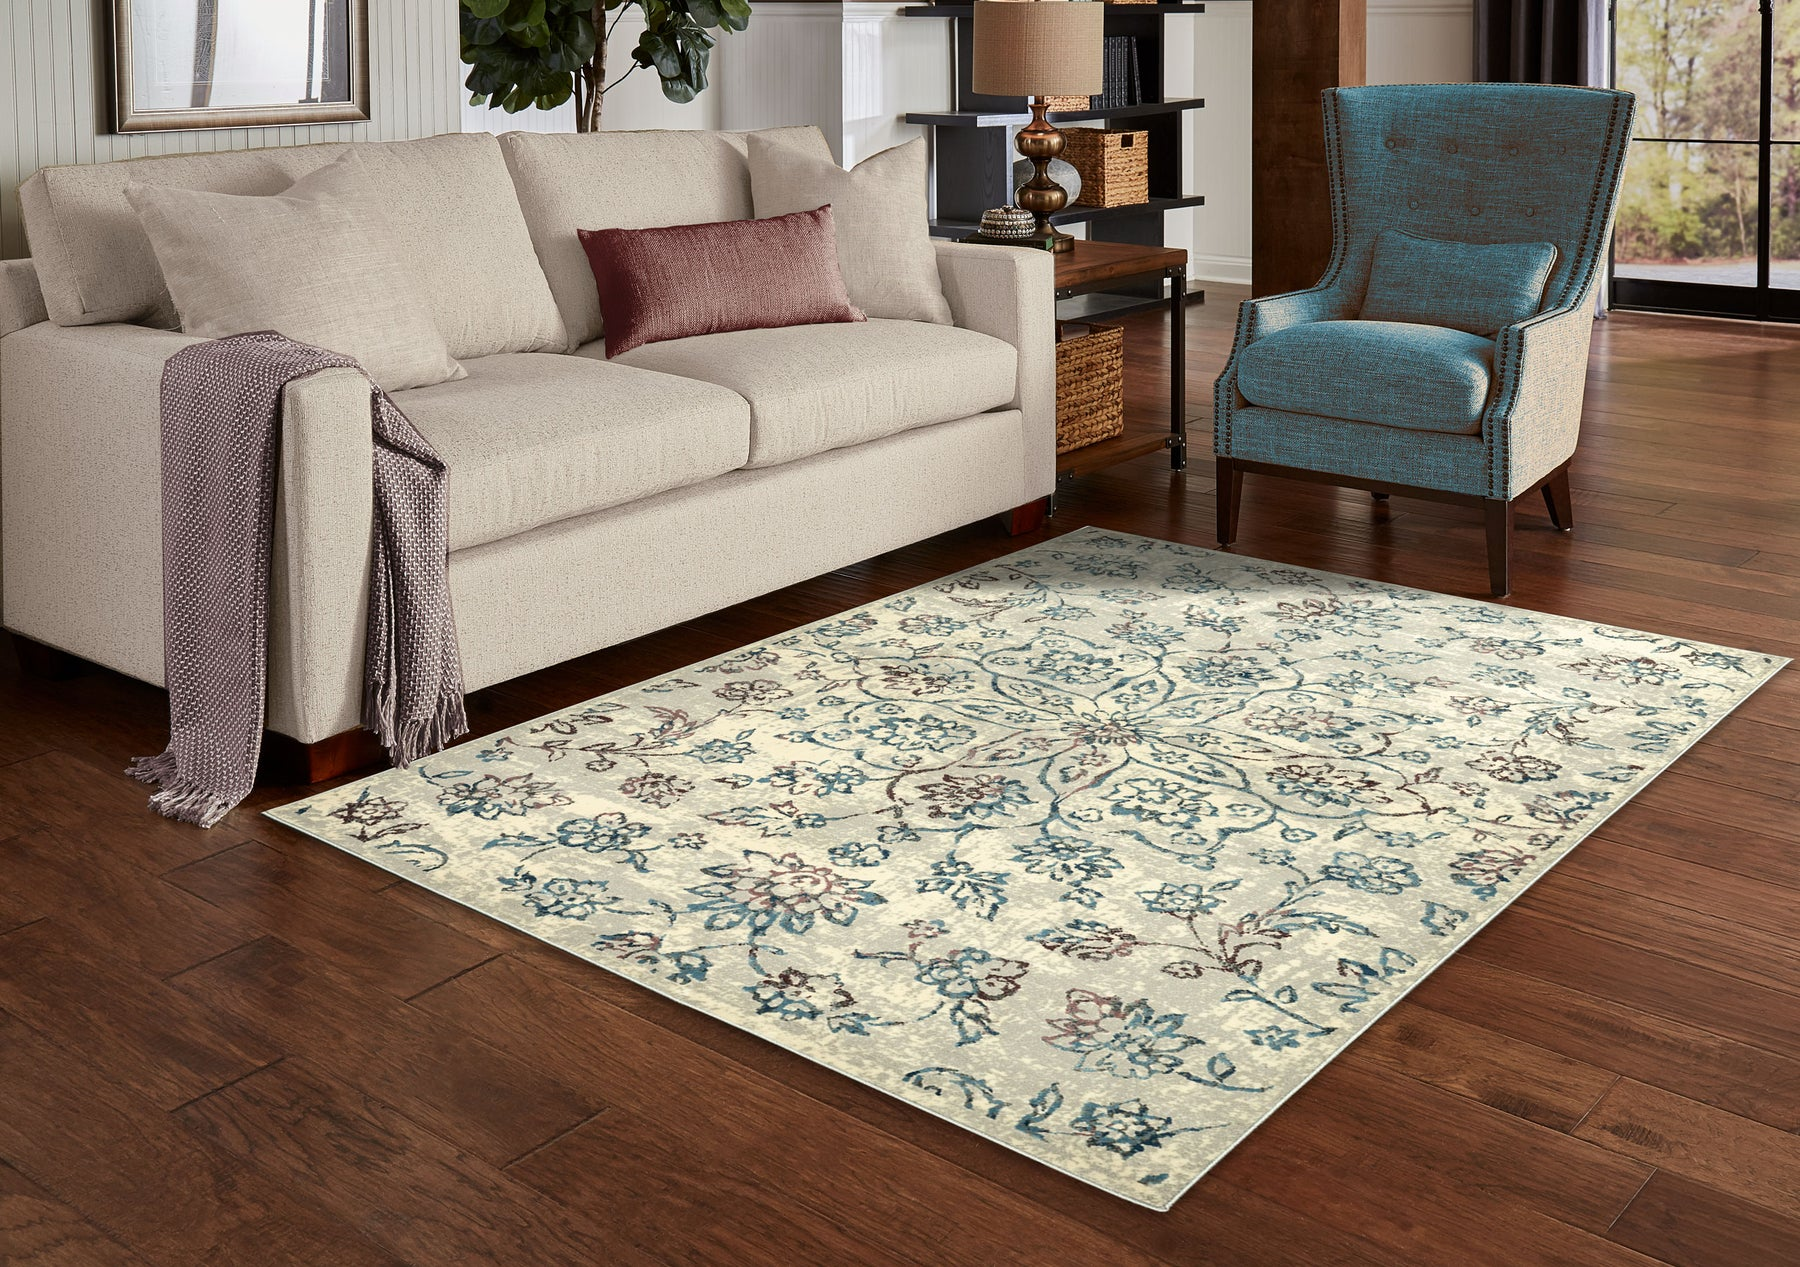 Flatweave, Low Pile or High Pile , What Rug Do YOU Need?